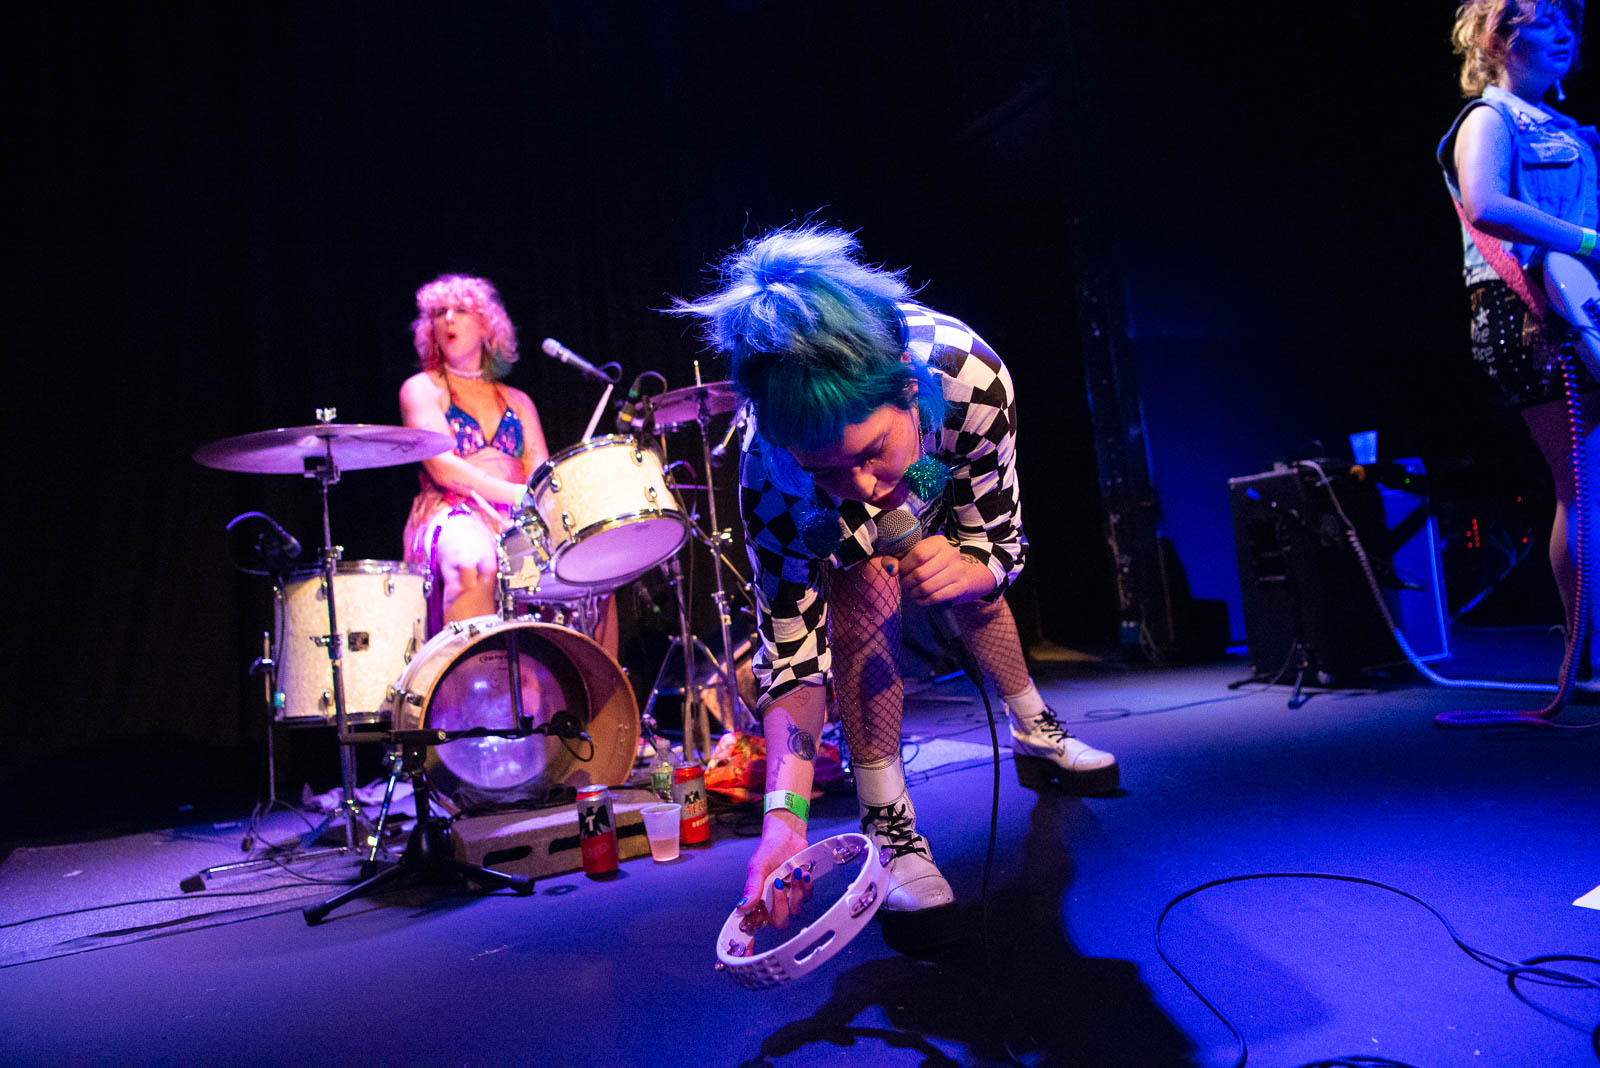 Tacocat at Rough Trade NYC